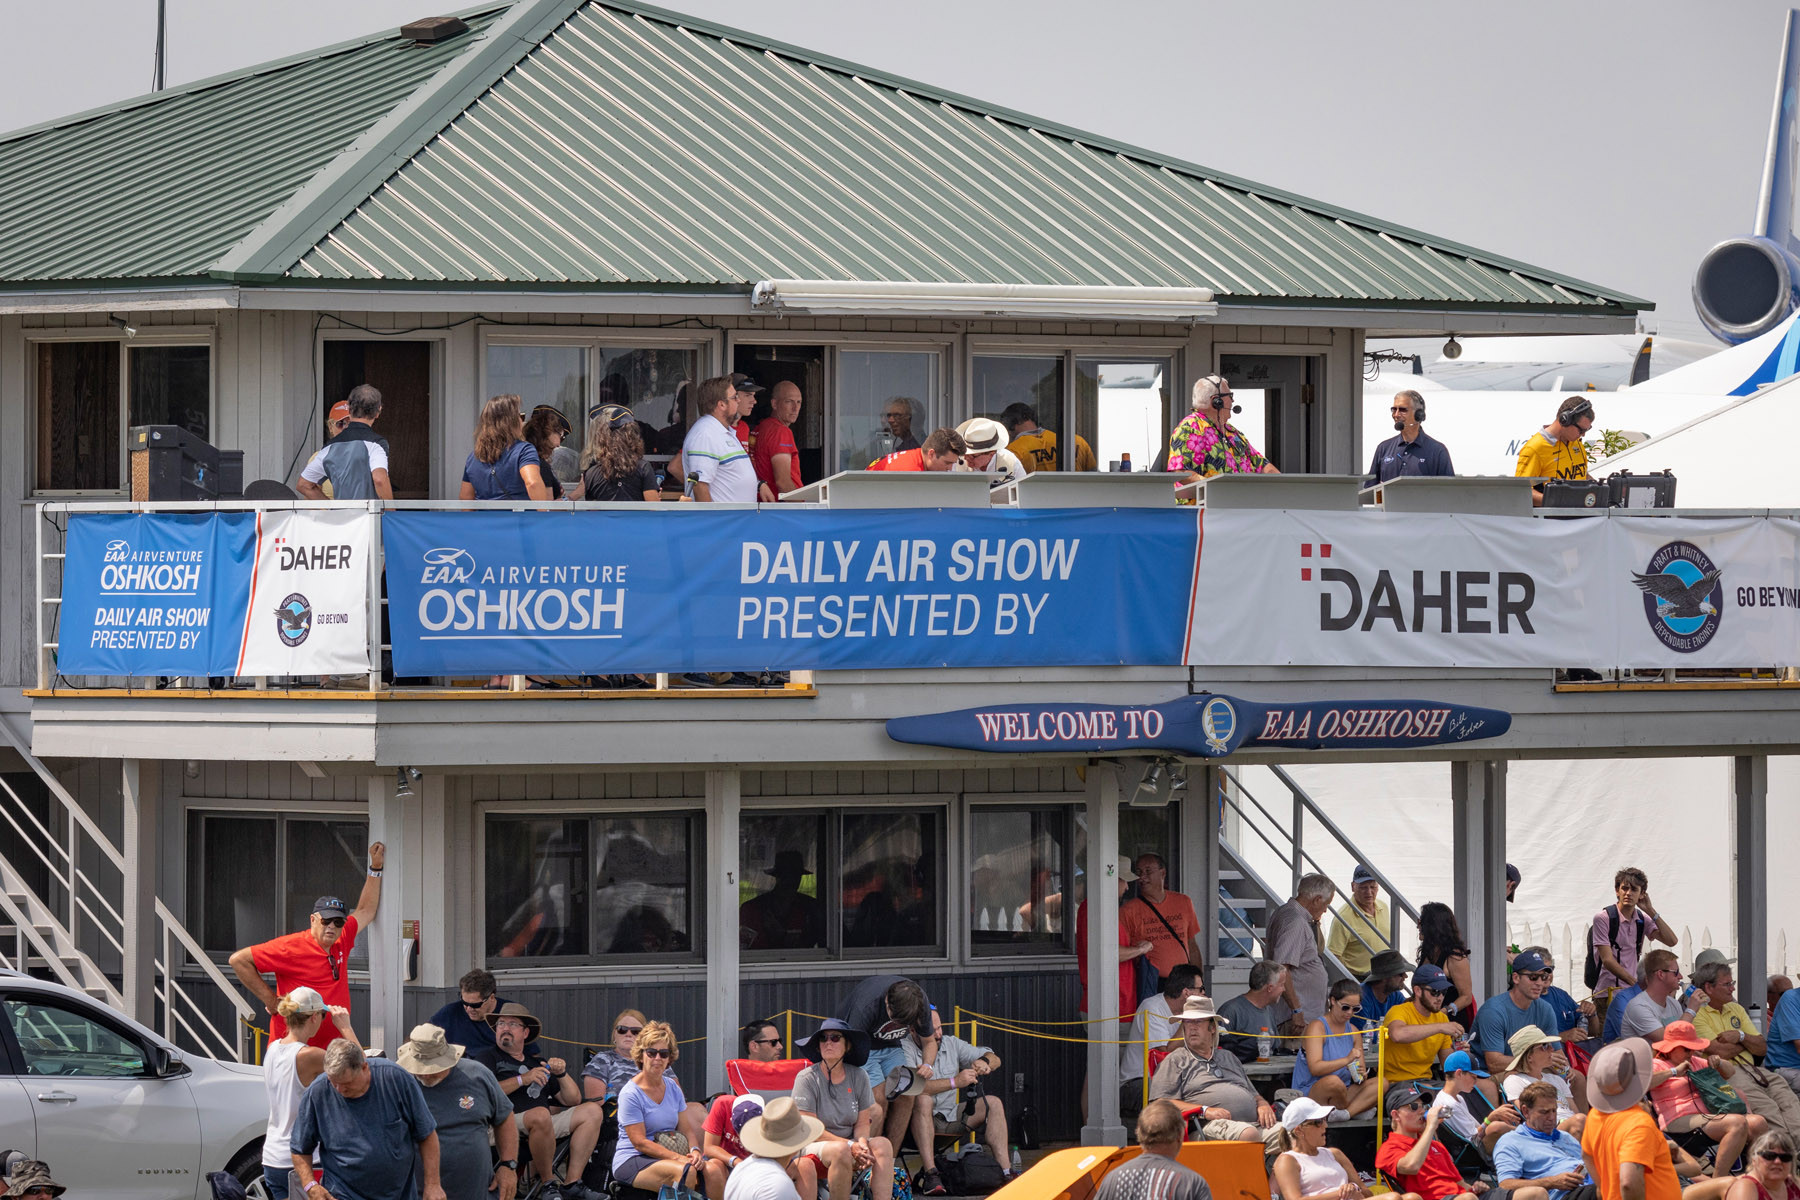 Air show Central by Jim Koepnick